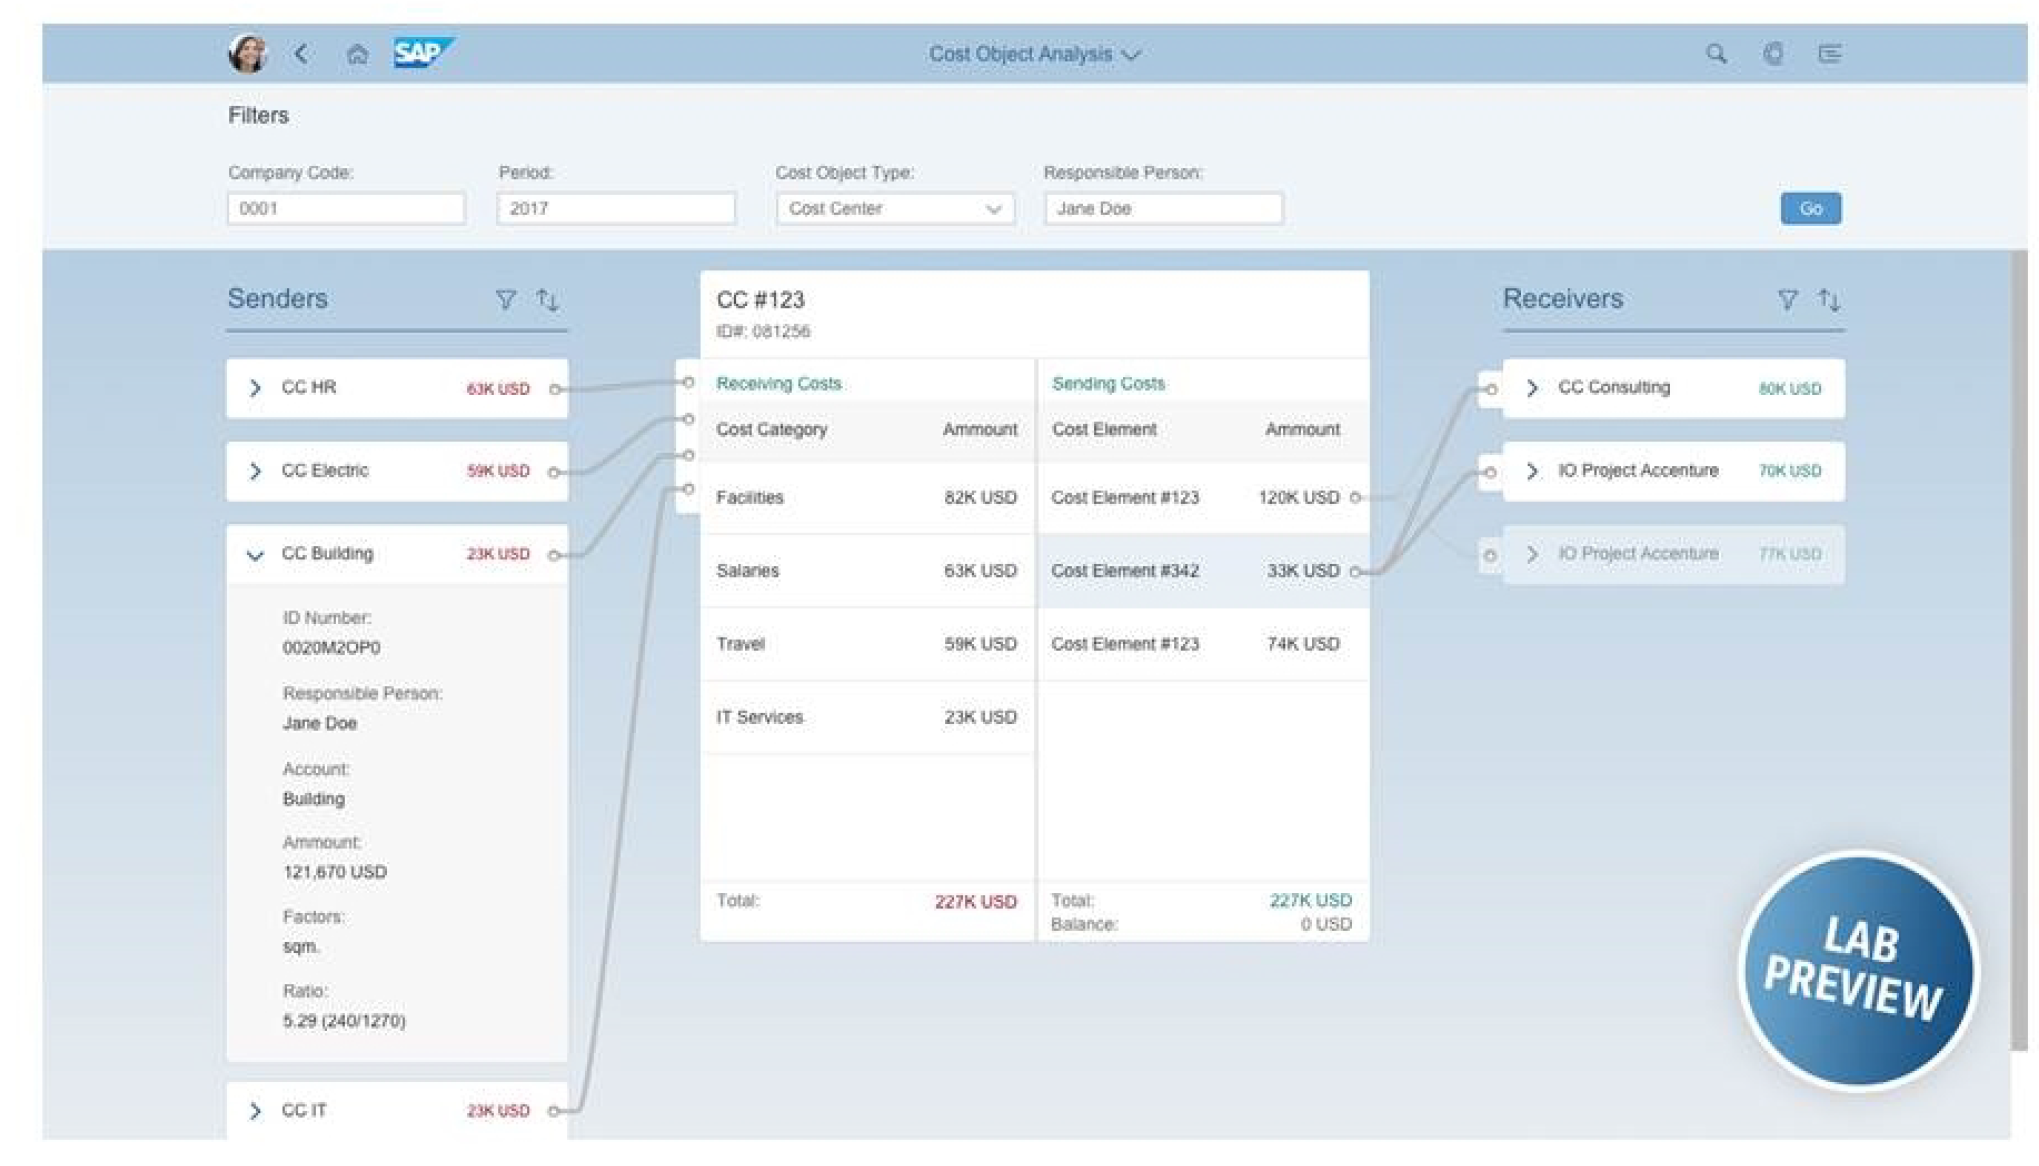 Cost Object Analysis